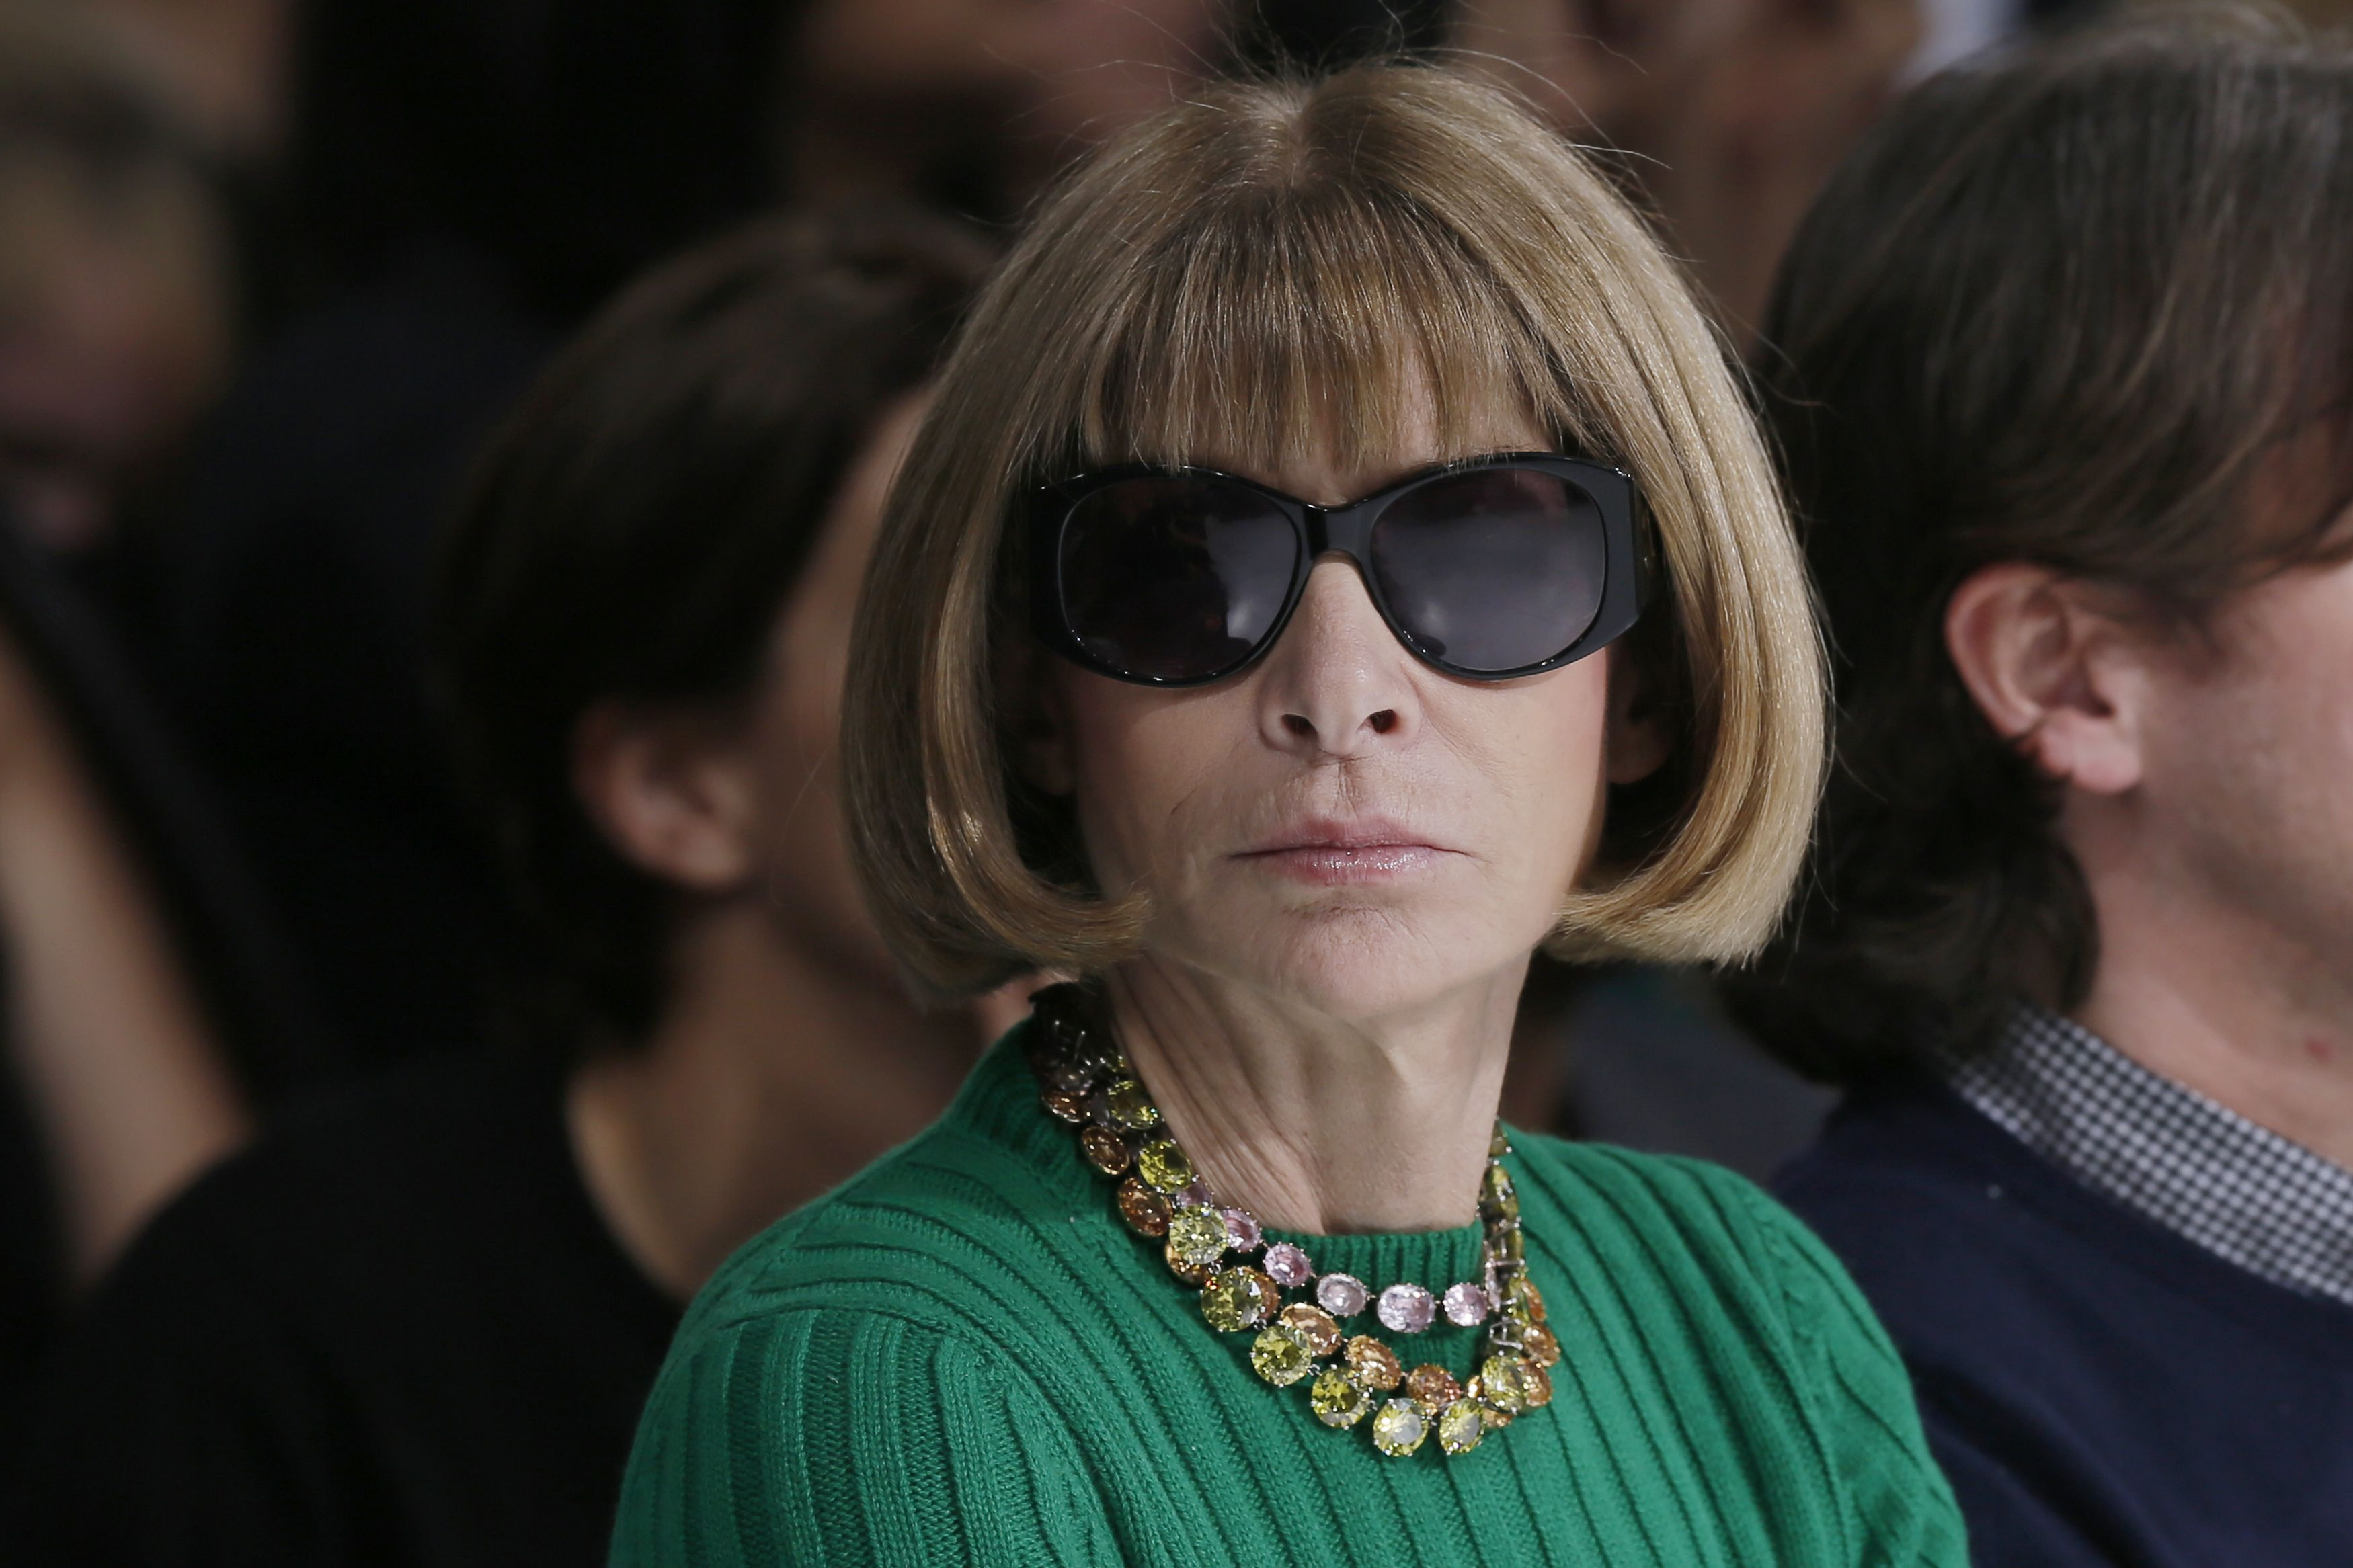 anna wintour green top reuter